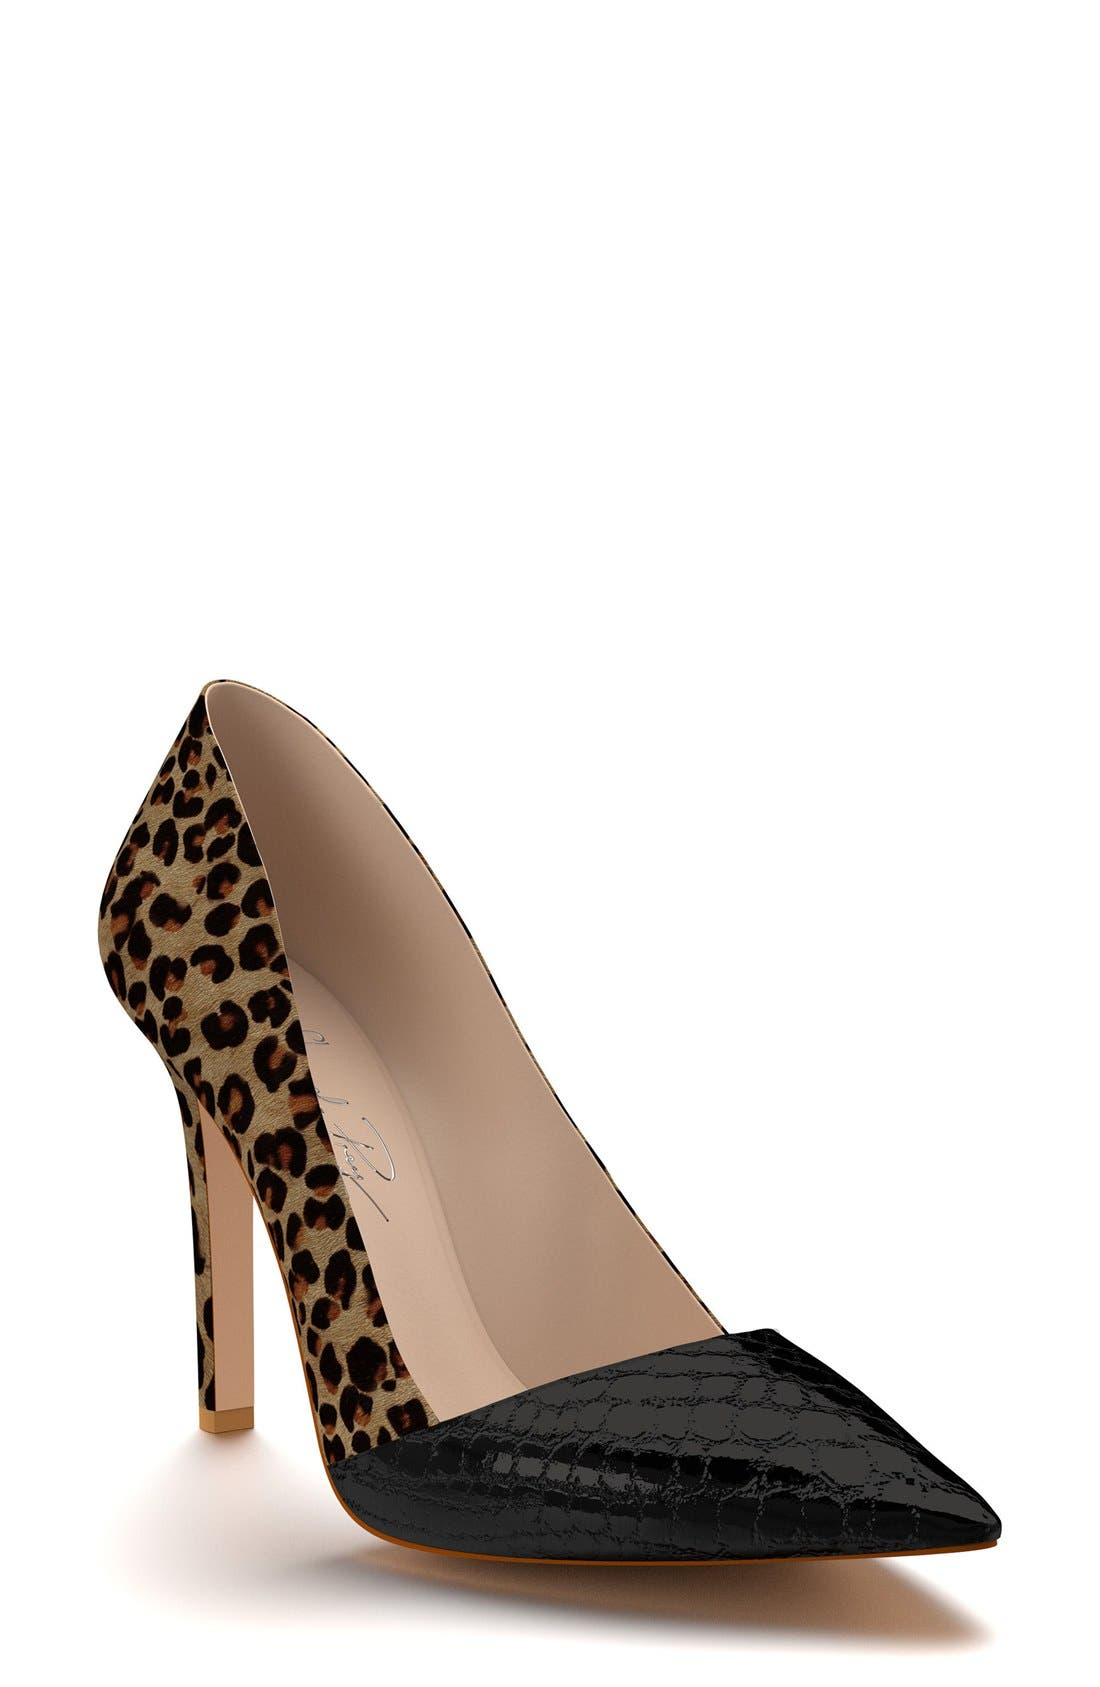 SHOES OF PREY Genuine Calf Hair Pointy Toe